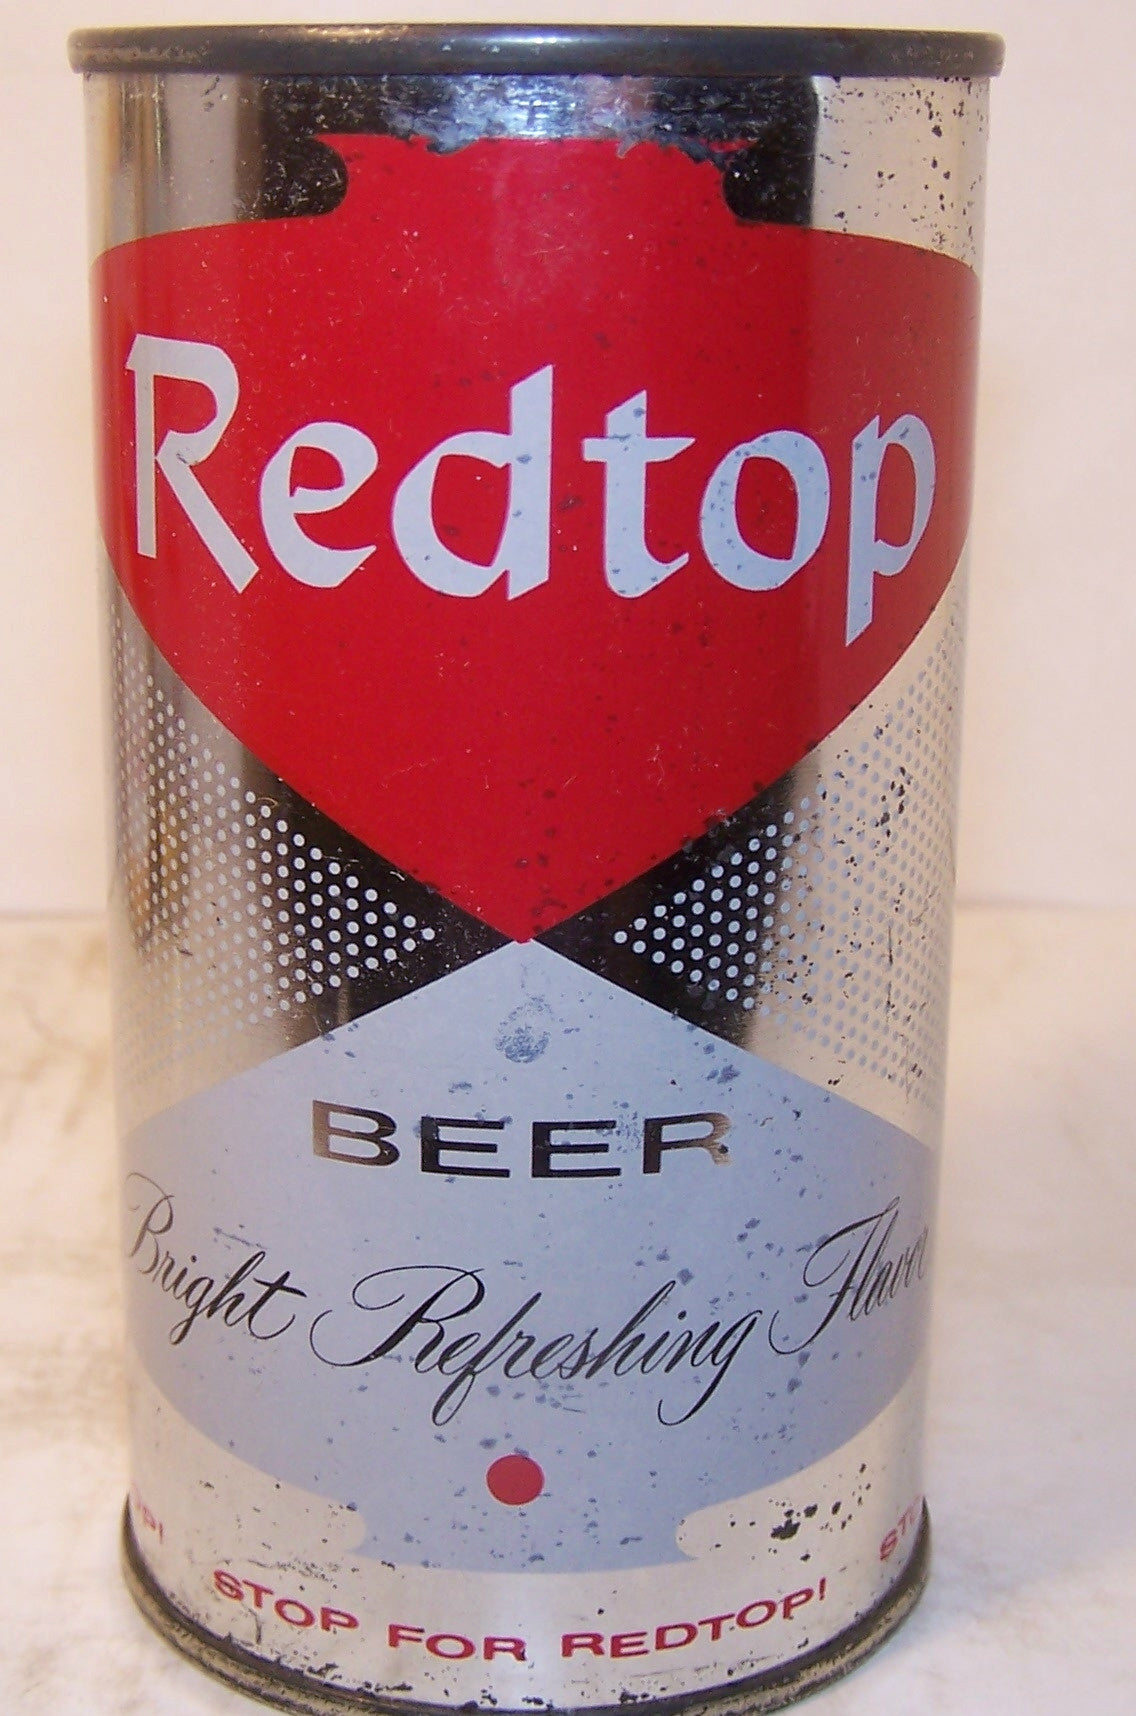 Red Top Beer, USBC 119-27 (Chicago) Grade 1- Sold on 2/14/15